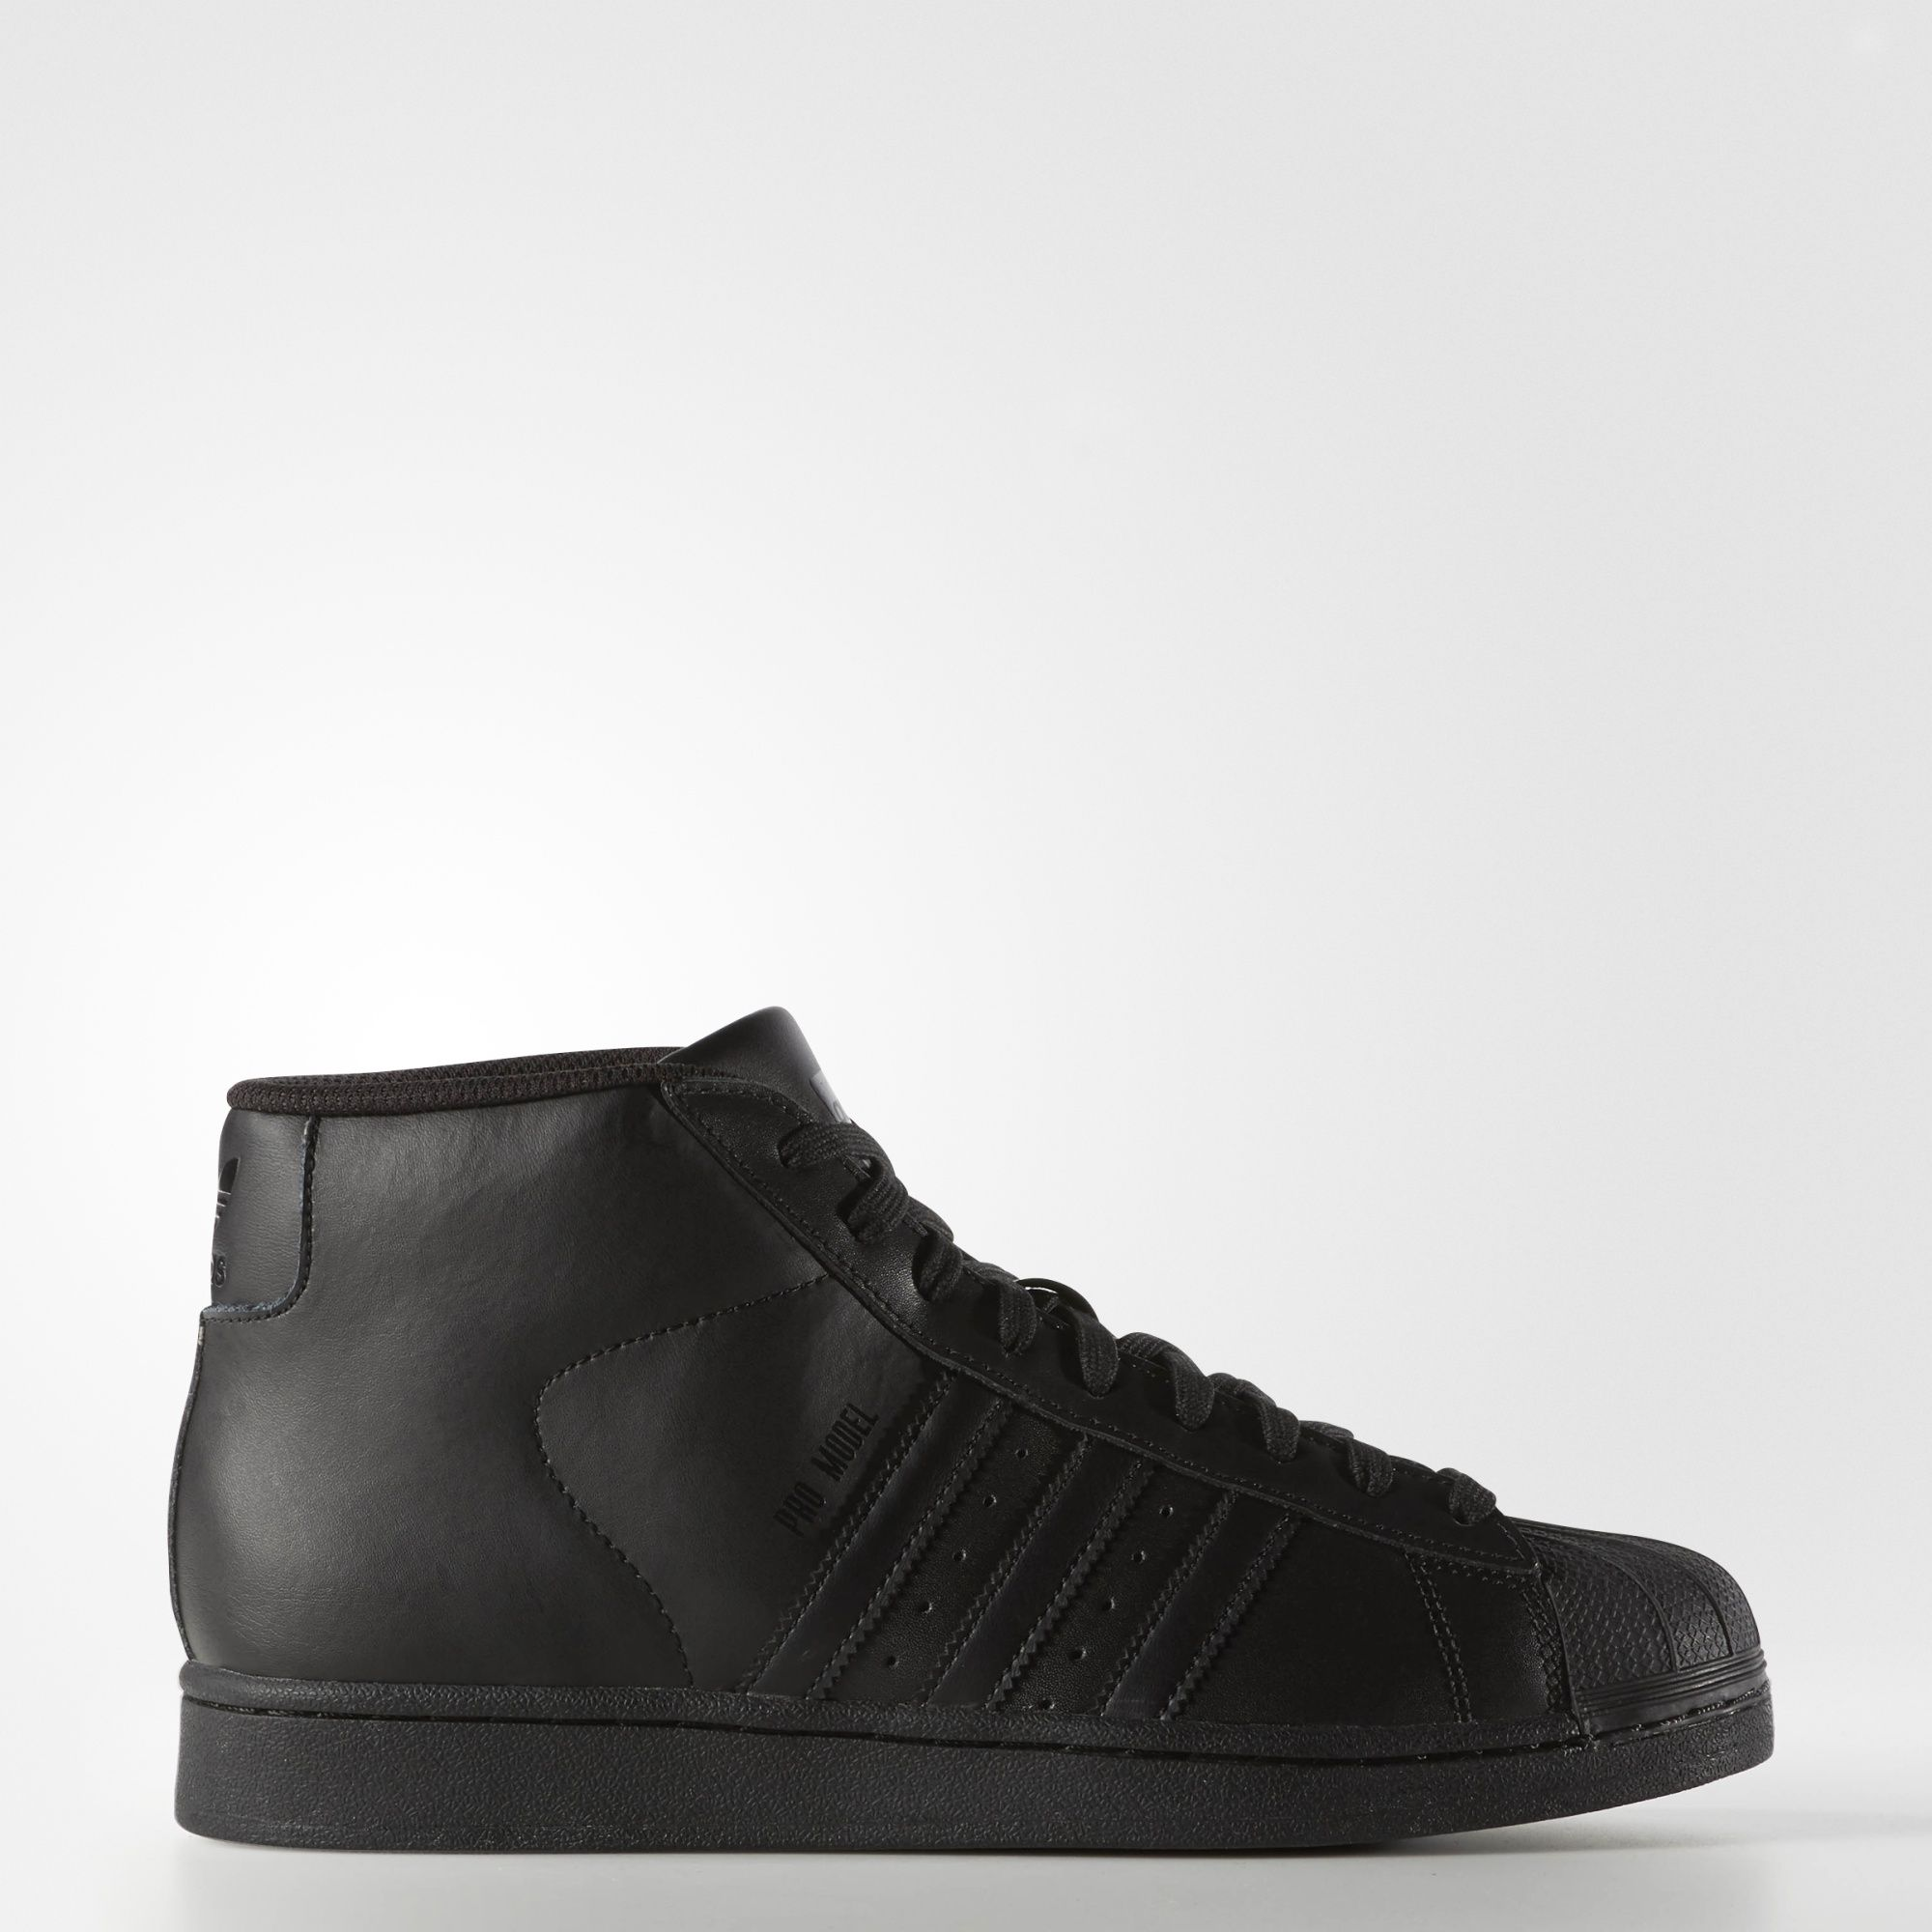 adidas Pro Model Shoes - Black | adidas US